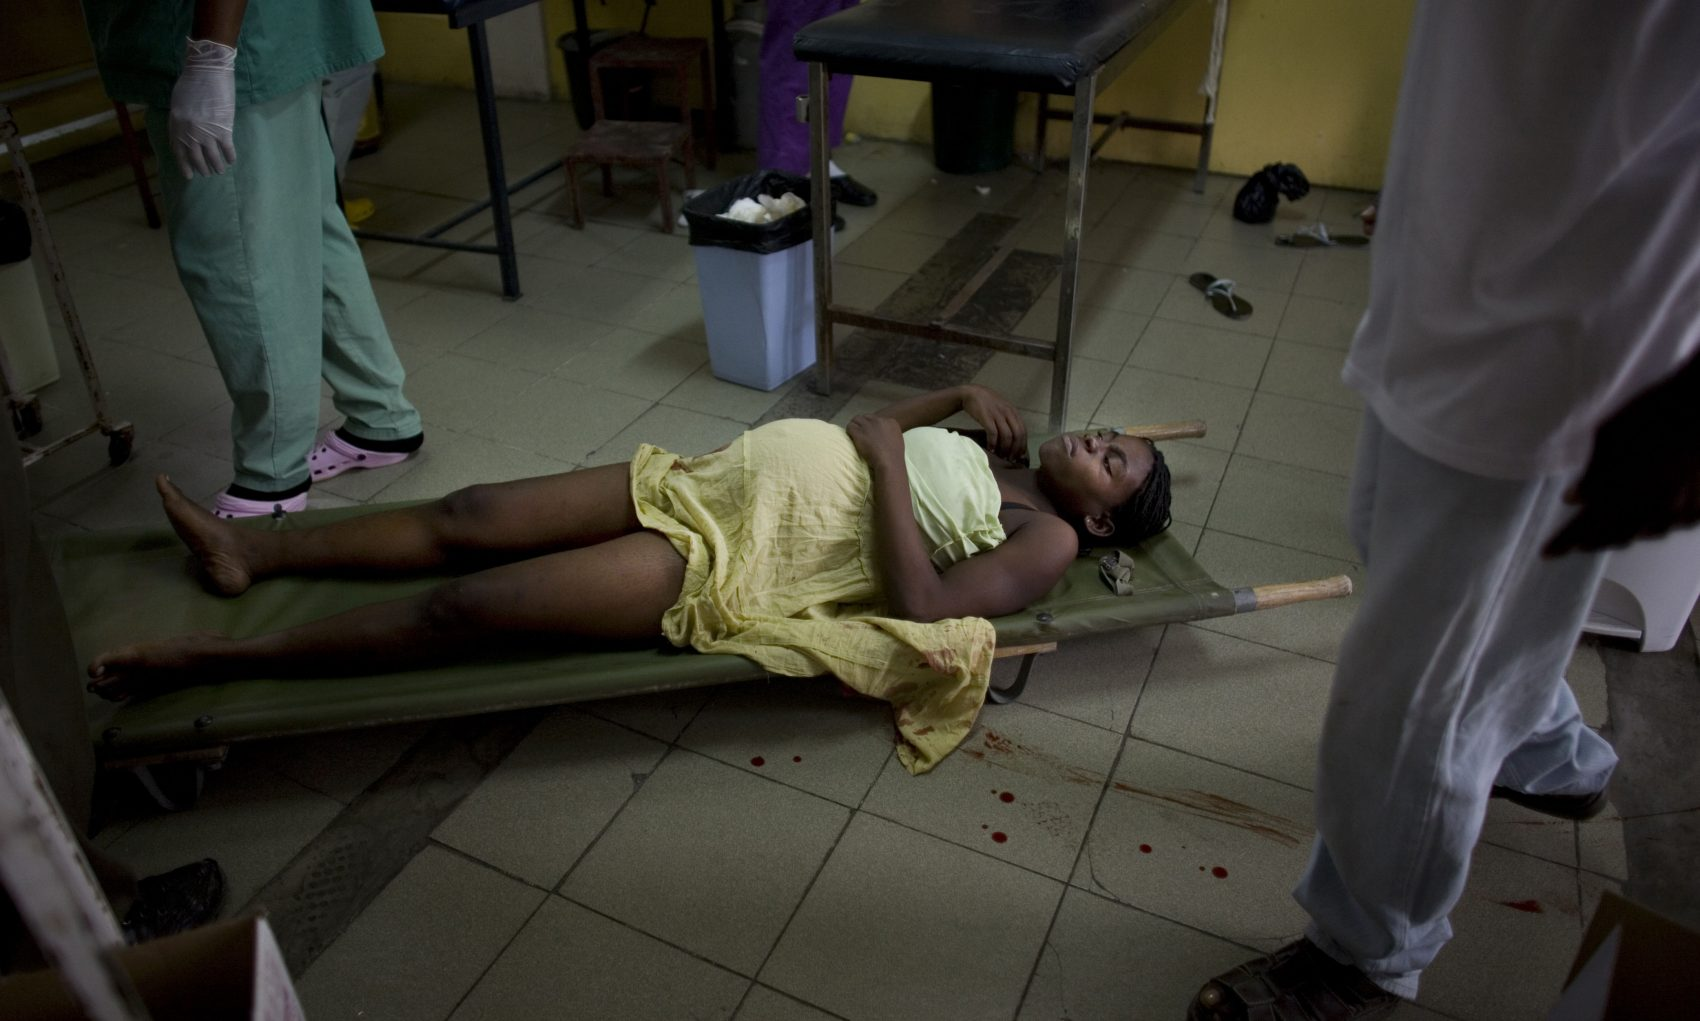 A woman in labor lies on a stretcher at the maternity ward of a Doctors Without Borders hospital in Port-au-Prince, on Jan. 19, 2009. (Ariana Cubillos/AP)